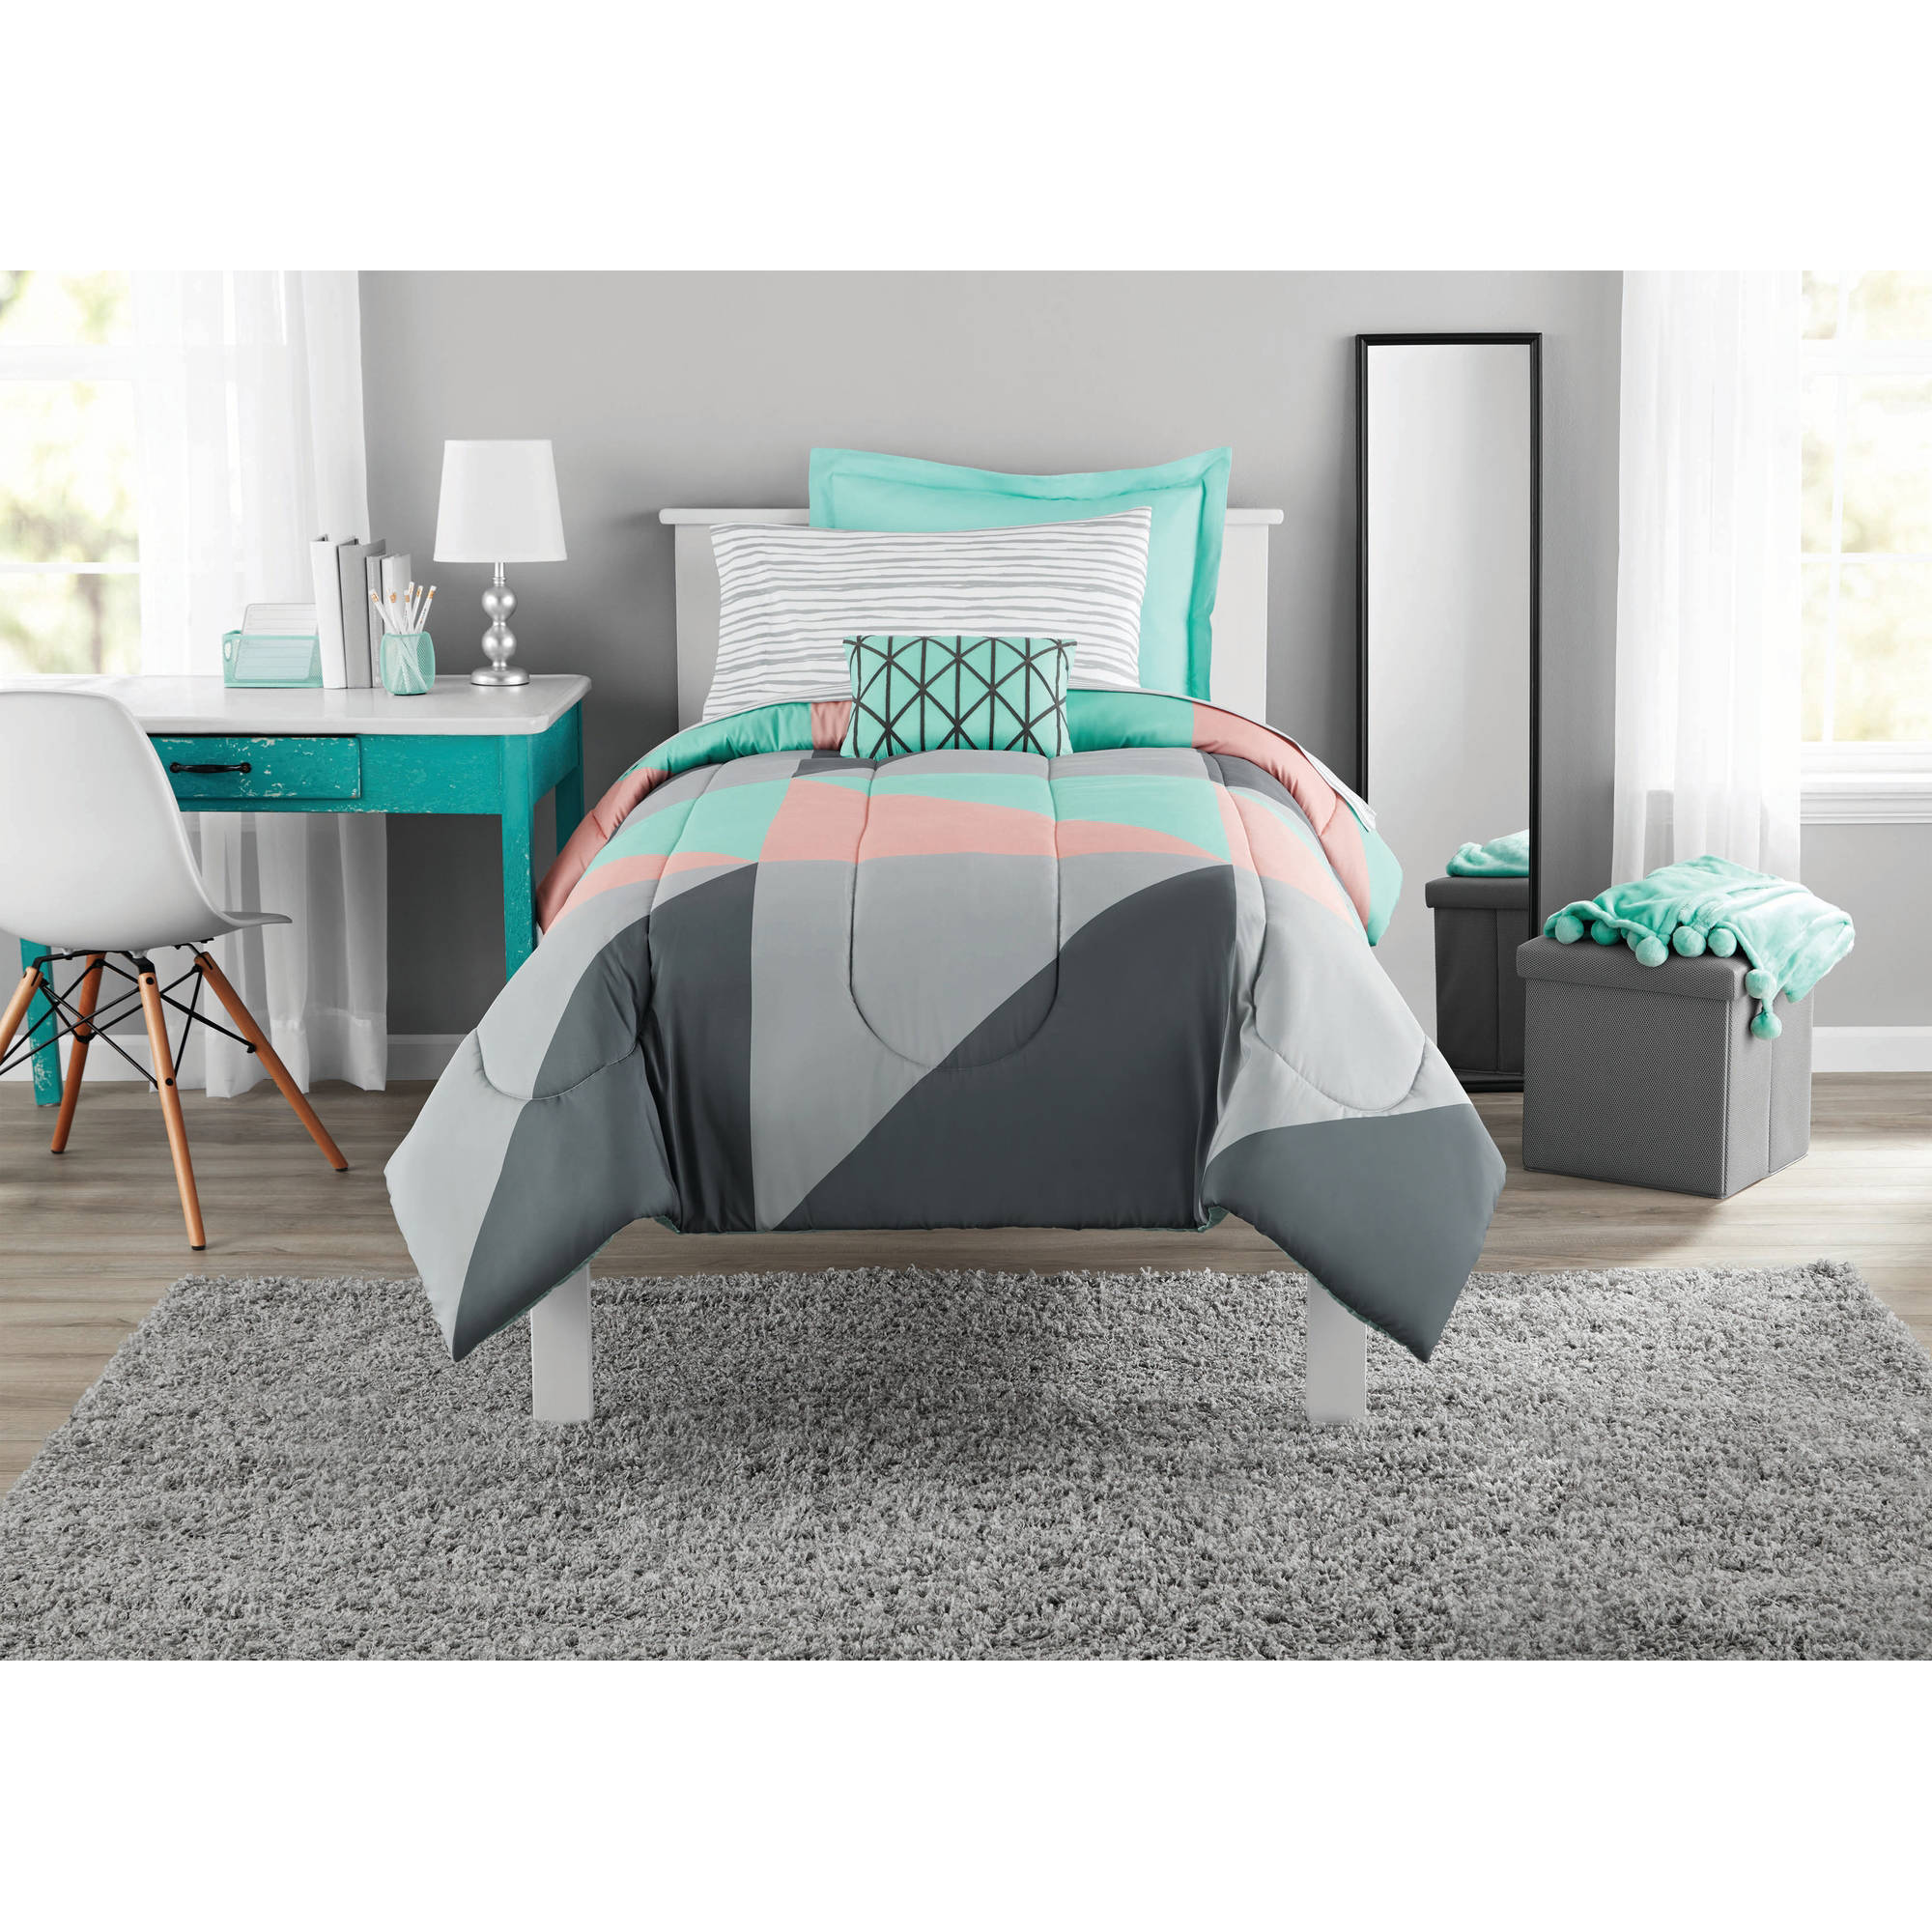 Mainstays Grey Teal 6 Pc Bed In A Bag Bedding Set With Sheet Set Twin Twin Xl Walmart Com Walmart Com